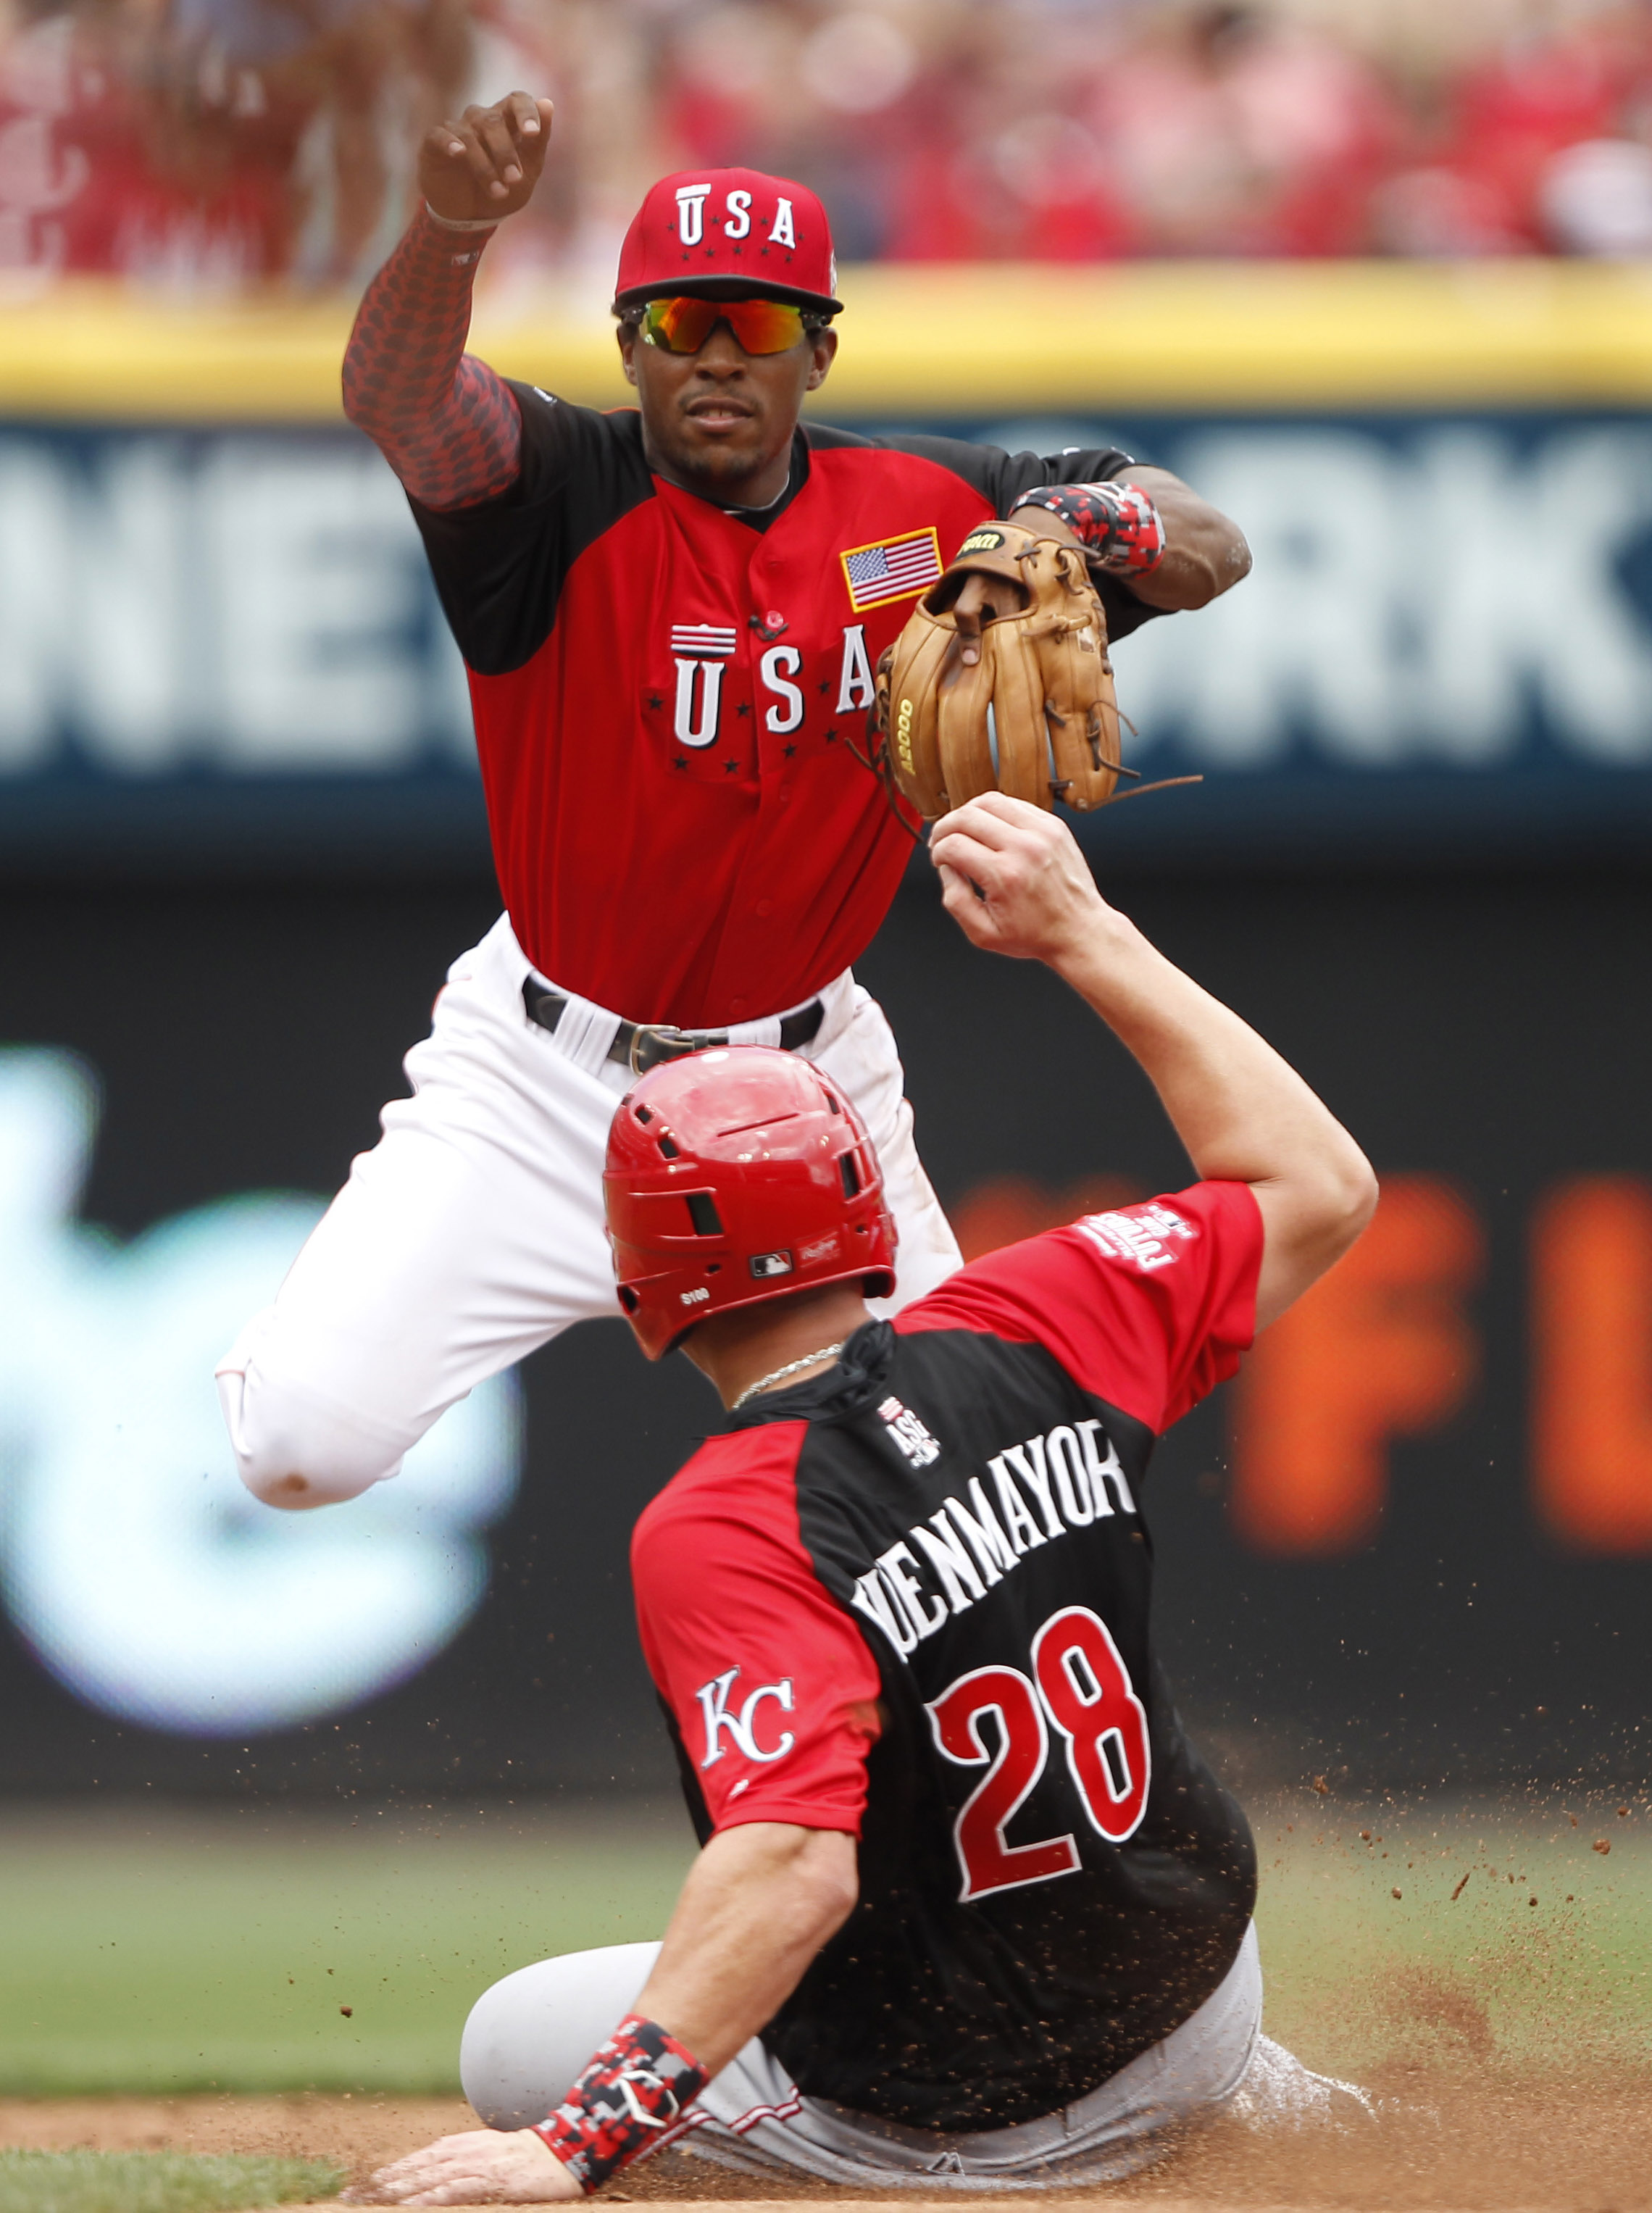 Tony Kemp, The Man of Steal, straight Supermaning that ho.